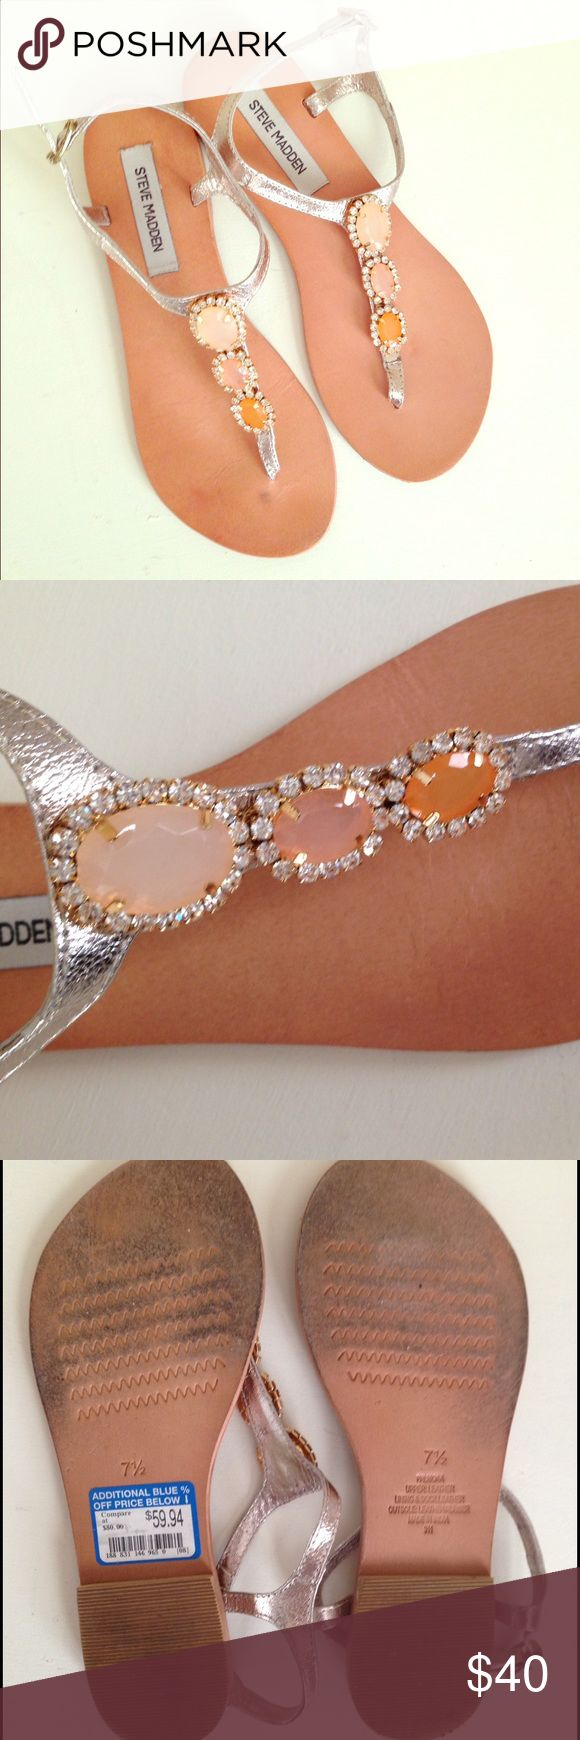 Steve Madden Flat Sandals Flat sandal with champagne gold straps and peach colored jewels. Worn for an event but in good shape (see photos). Steve Madden Shoes Sandals